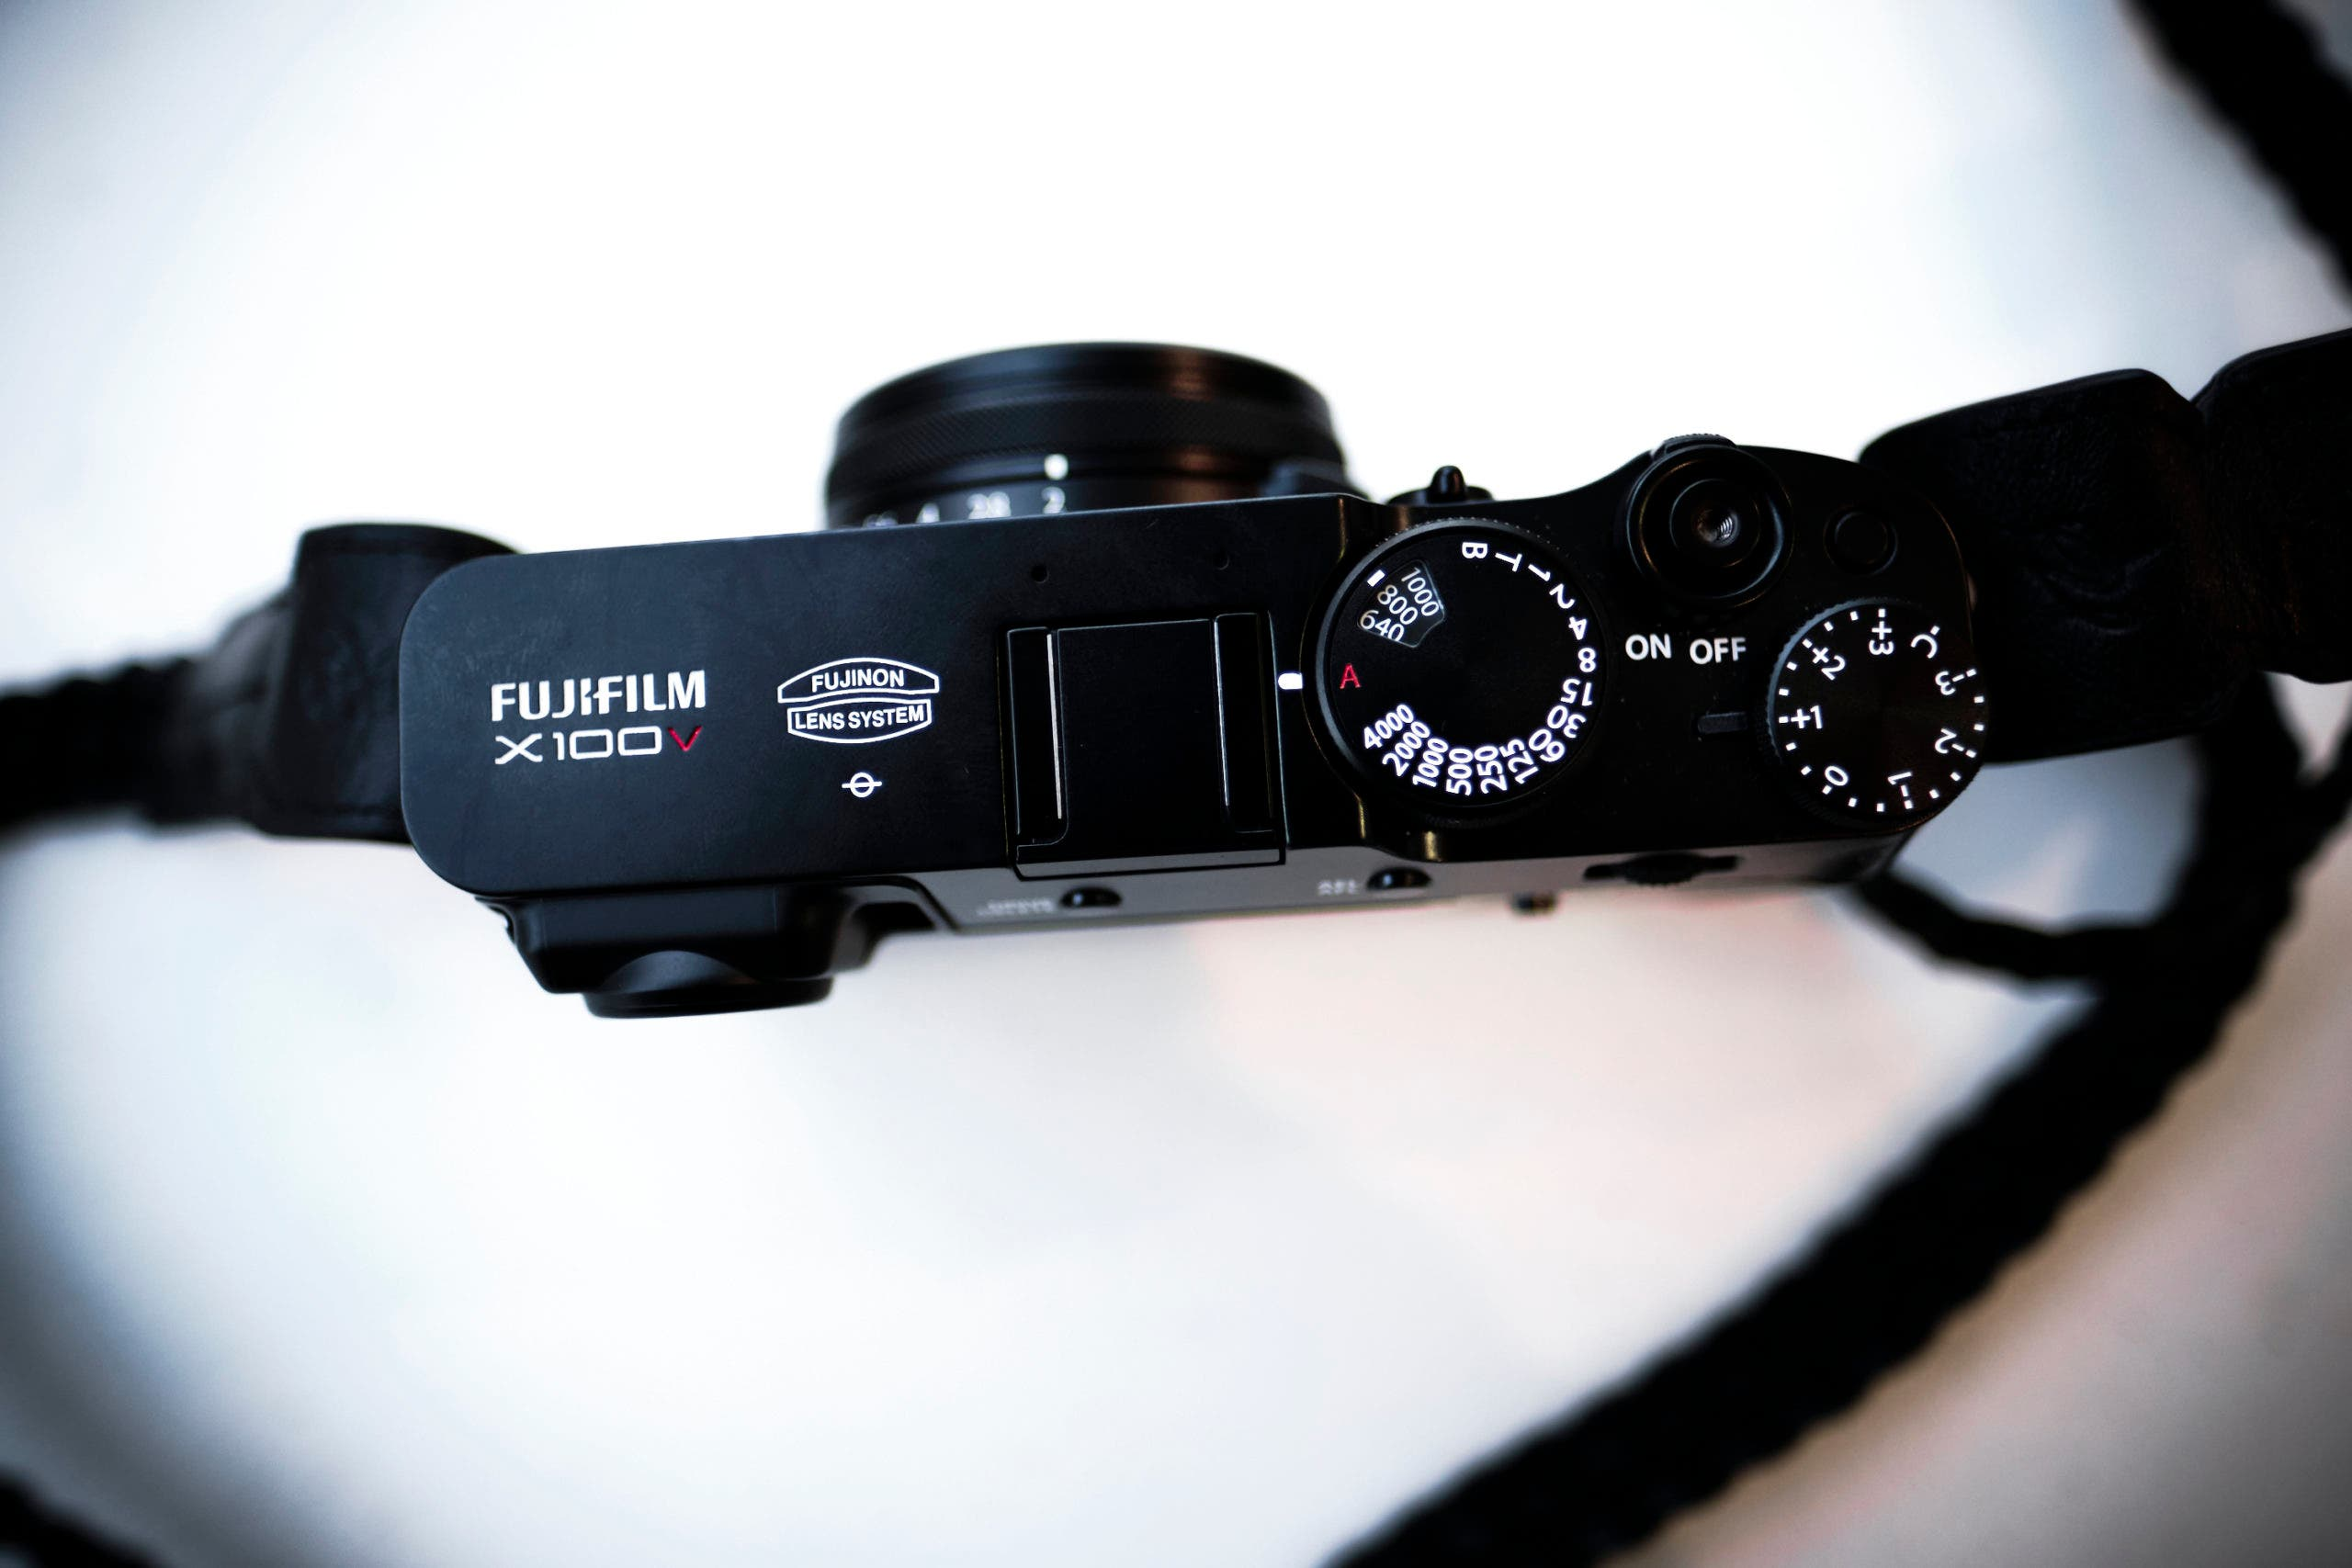 50mm Lens Lovers and Fujifilm Fans Will Want to Watch This